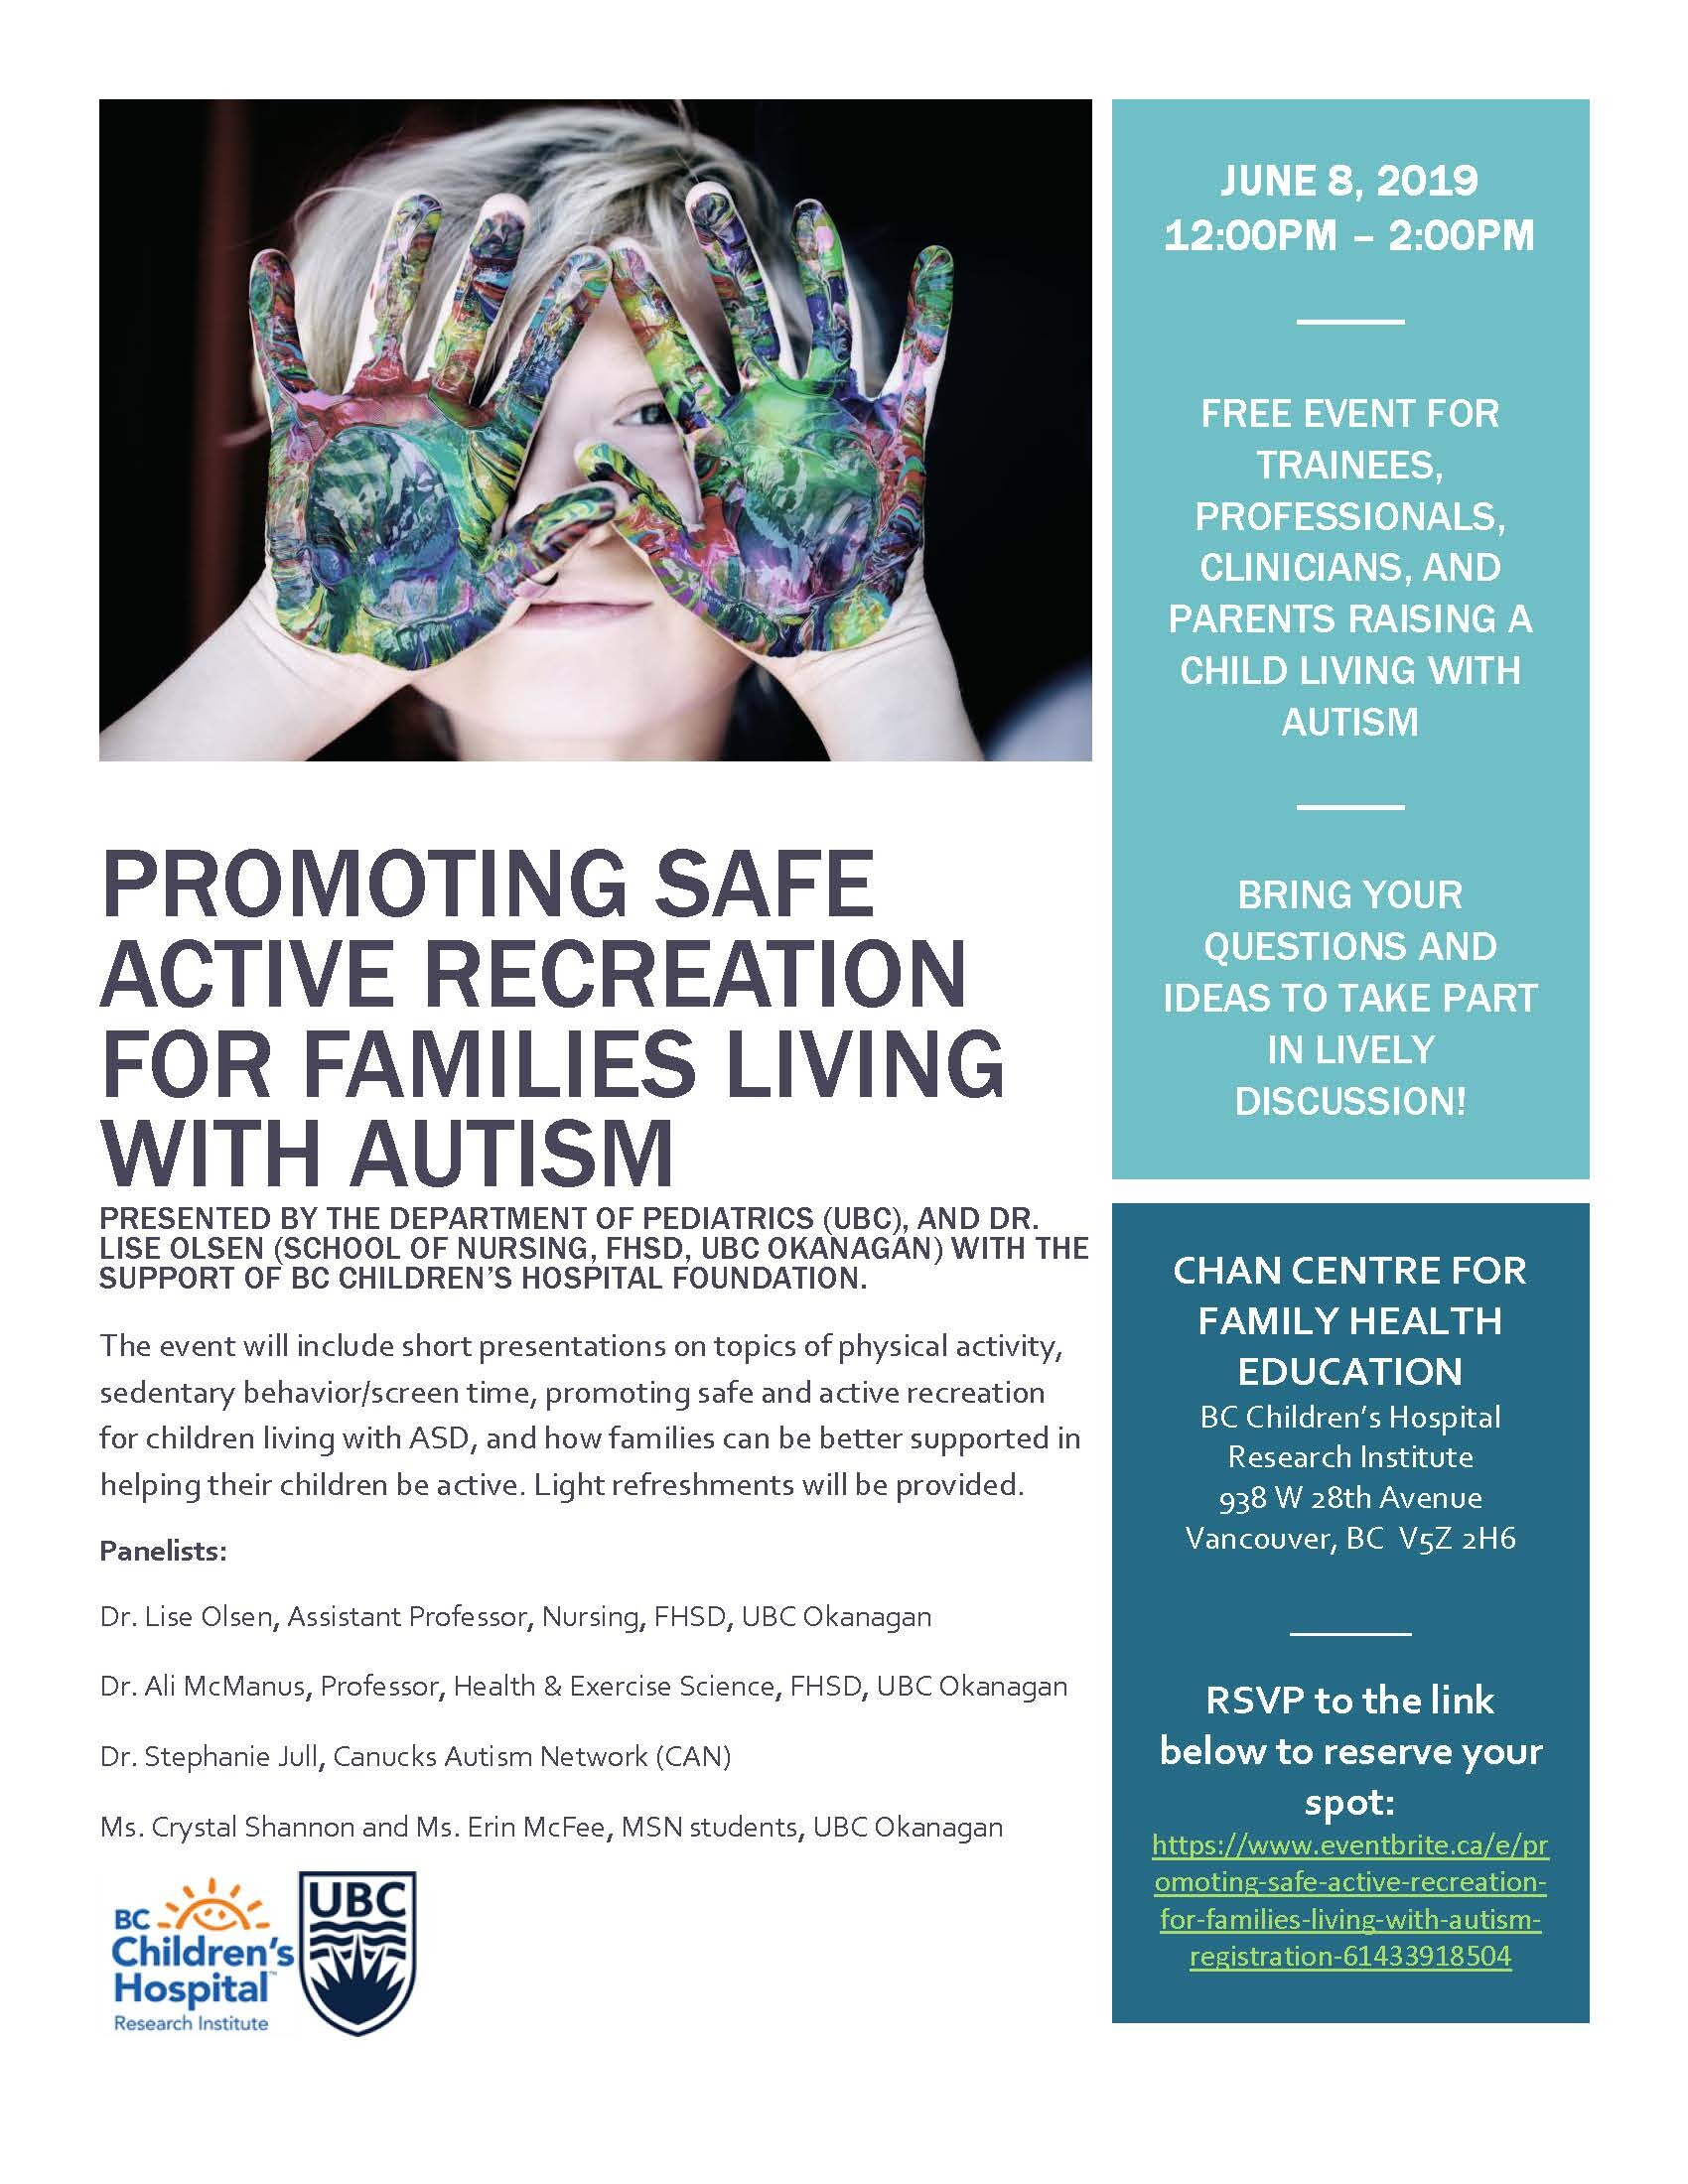 Promoting Safe Active Recreation for Families Living with Autism Spectrum Disorders